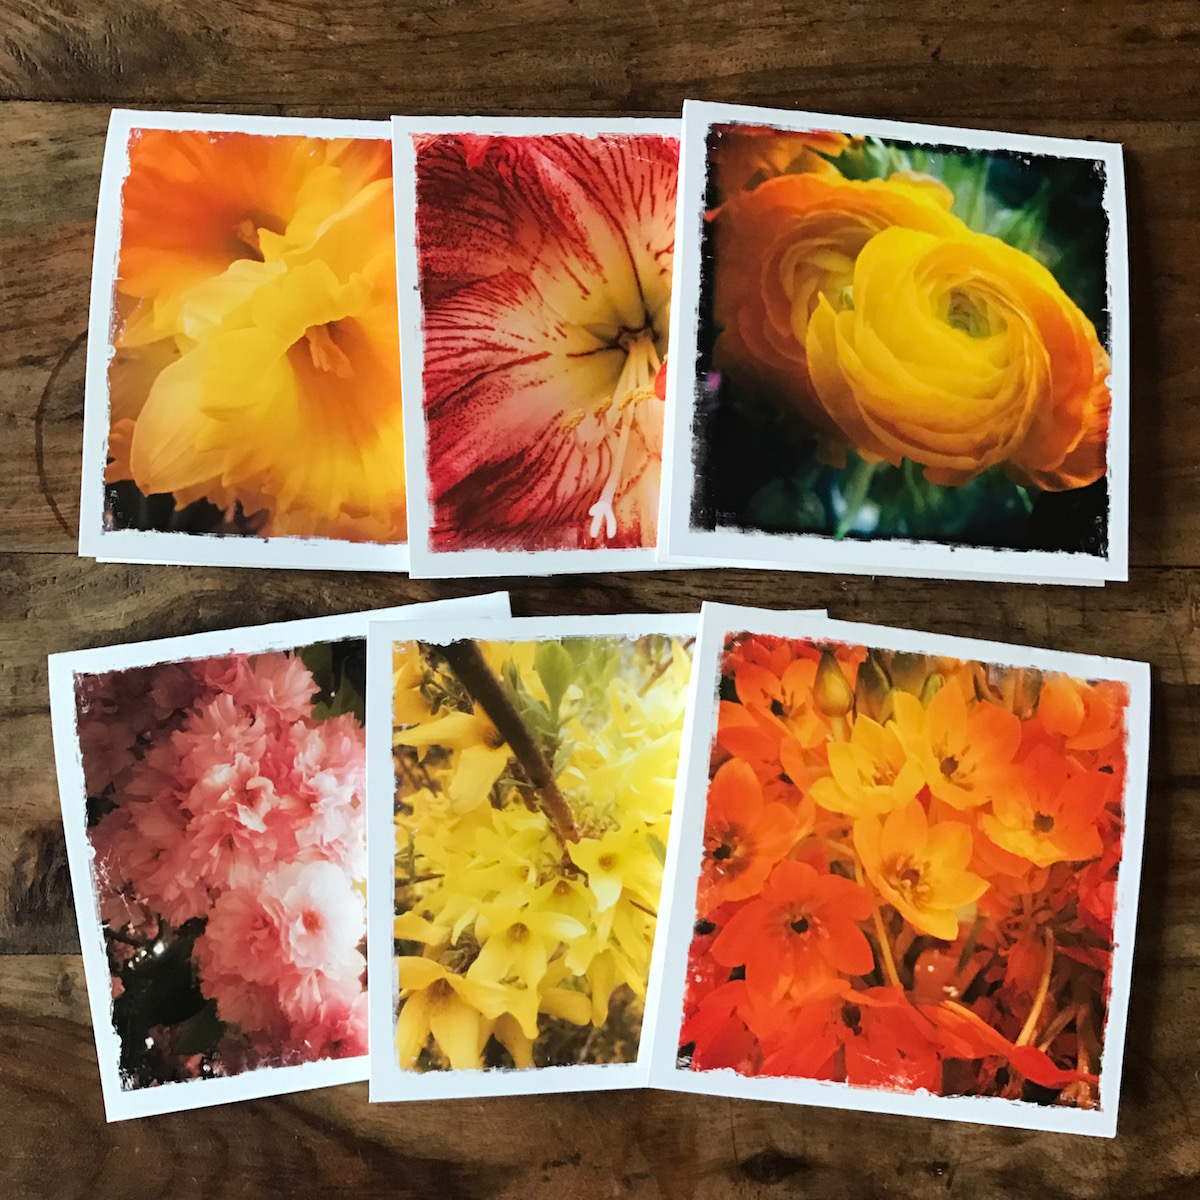 Spring Flowers Multipack, Photographs by Barbara Sinclair